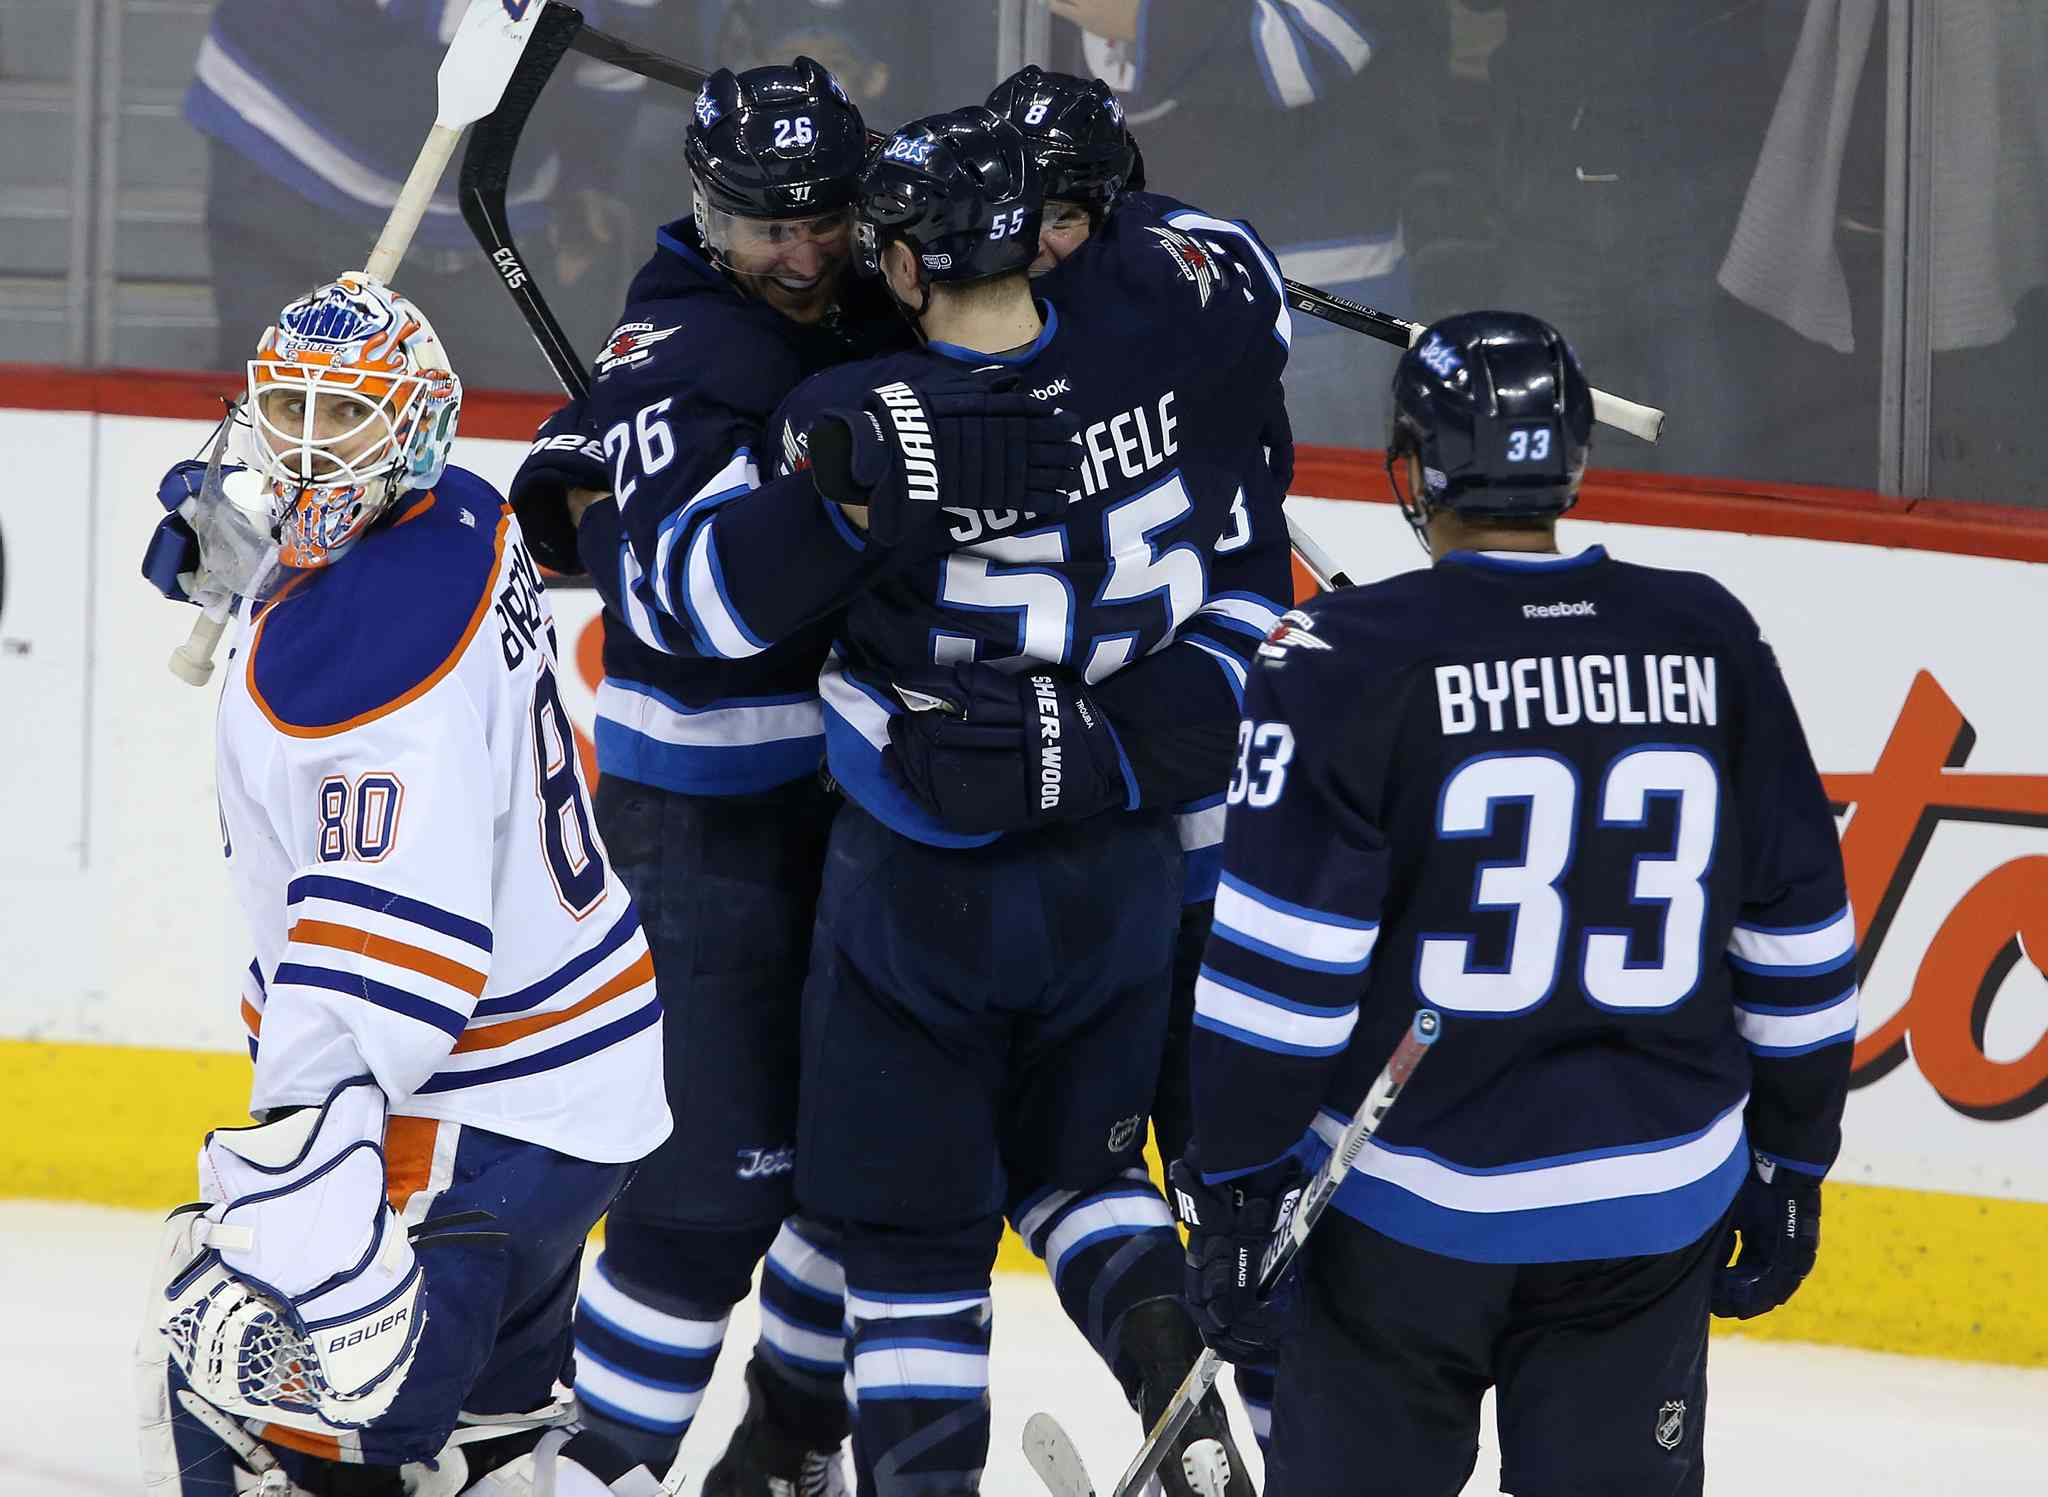 Edmonton Oilers' goaltender Ilya Bryzgalov (80) looks on as the Winnipeg Jets' Blake Wheeler (26), Mark Scheifele (55), Jacob Trouba (8) and Dustin Byfuglien (33) celebrate Trouba's game-winning goal in overtime to beat the Edmonton Oilers 3-2 in Winnipeg Saturday.